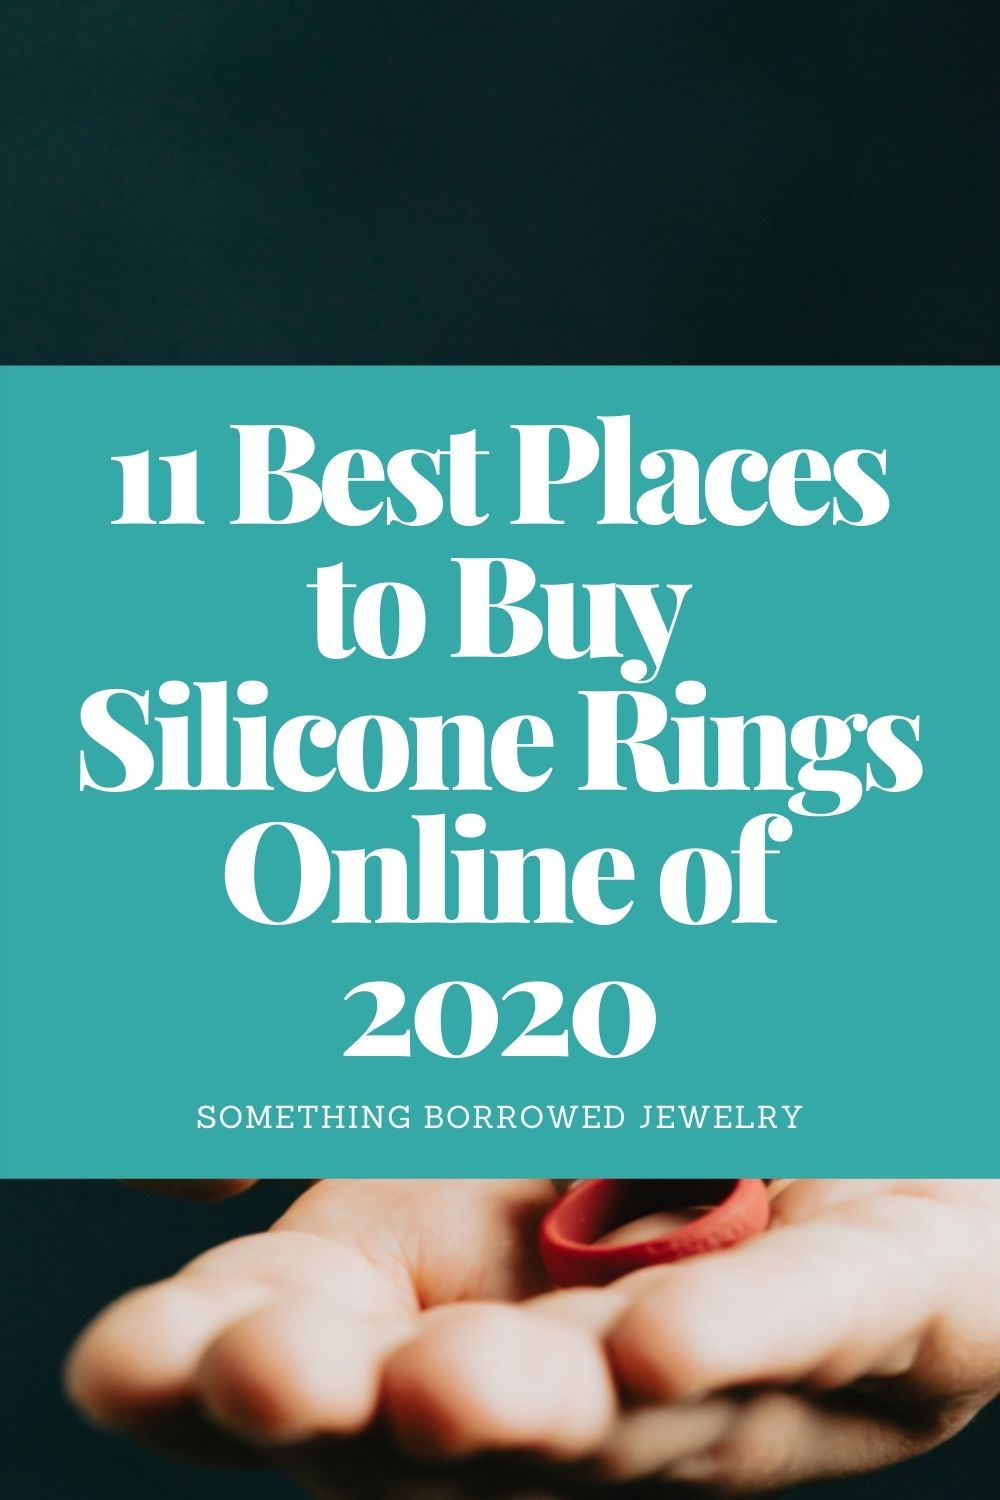 11 Best Places to Buy Silicone Rings Online of 2020 pin